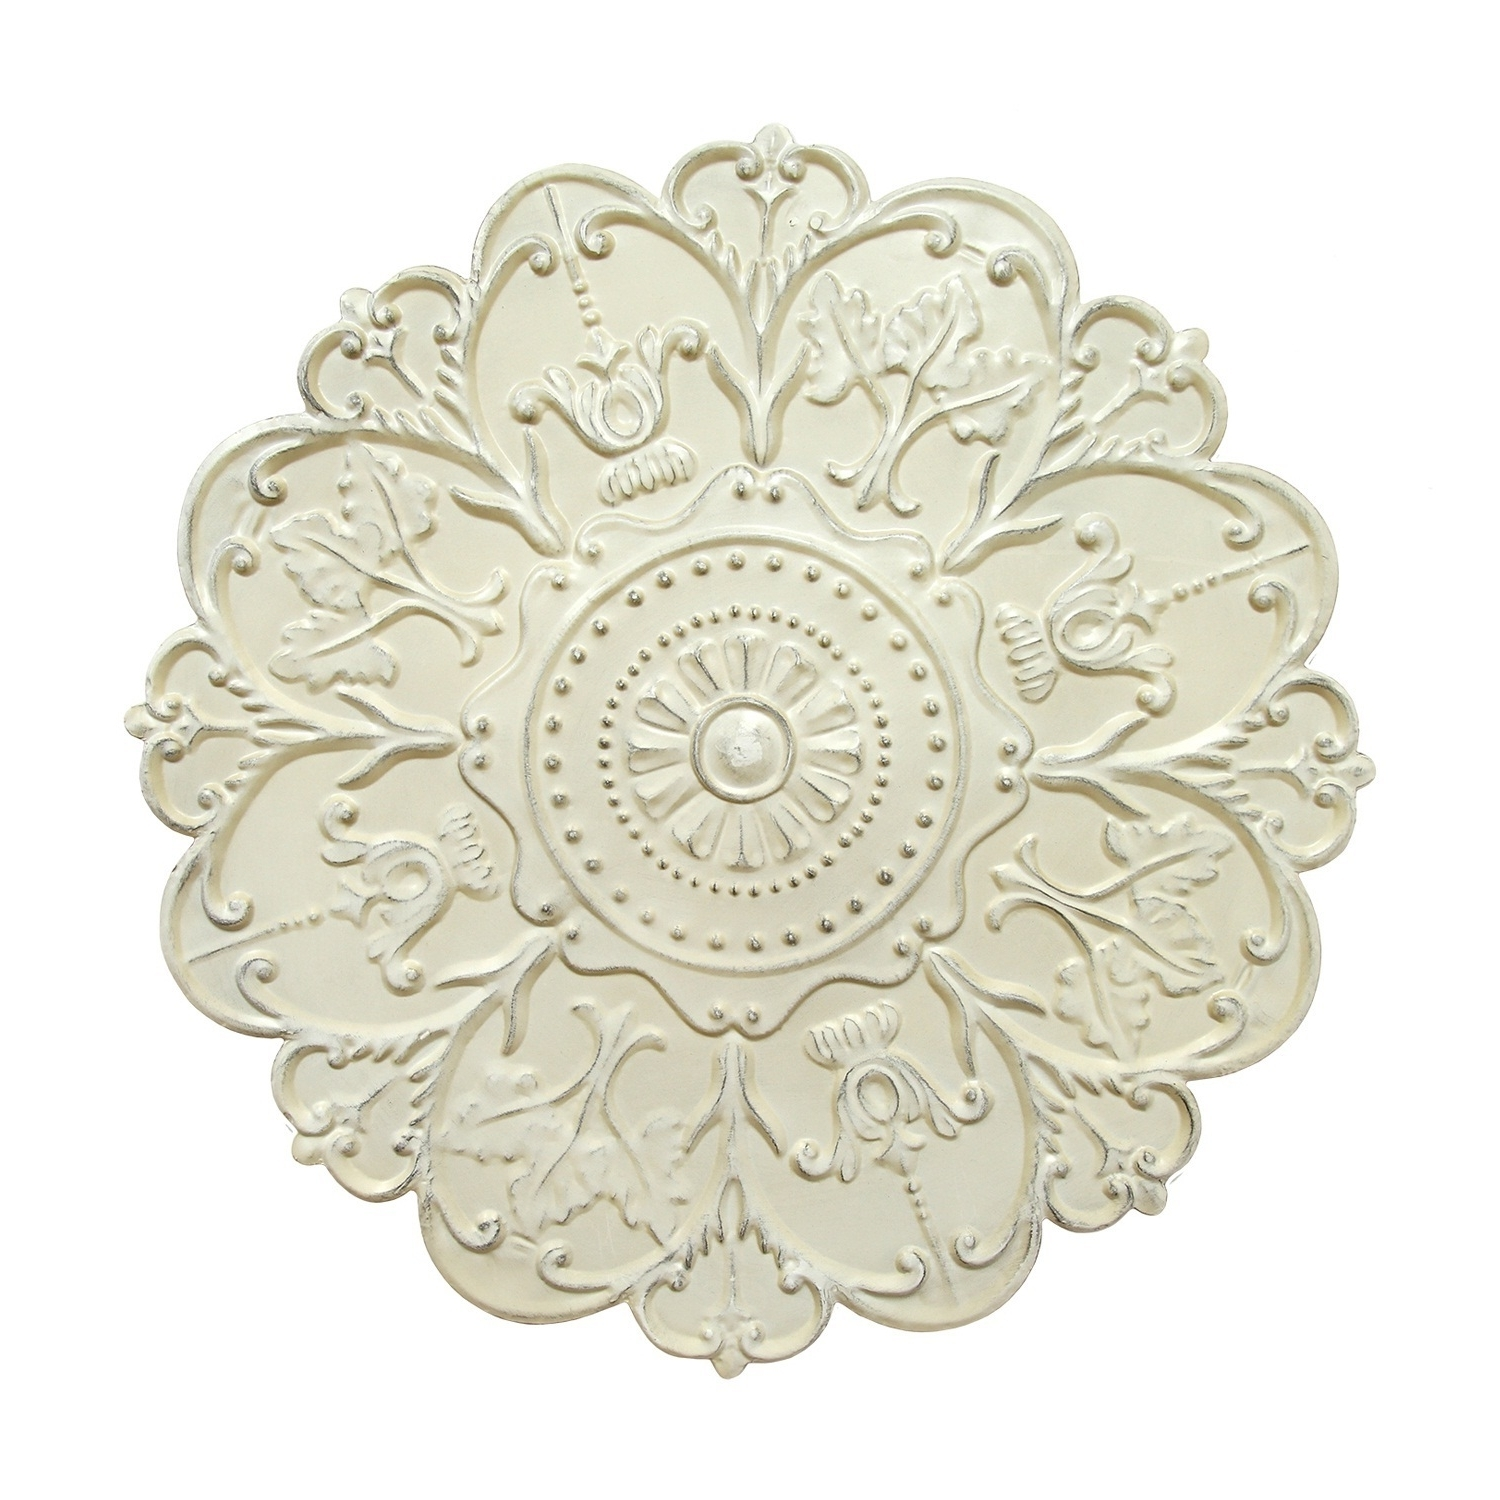 Most Recently Released Medallion Wall Art Within Medallion Wall Art Floral Accent Round Metal Home Decor Shabby White (View 8 of 15)